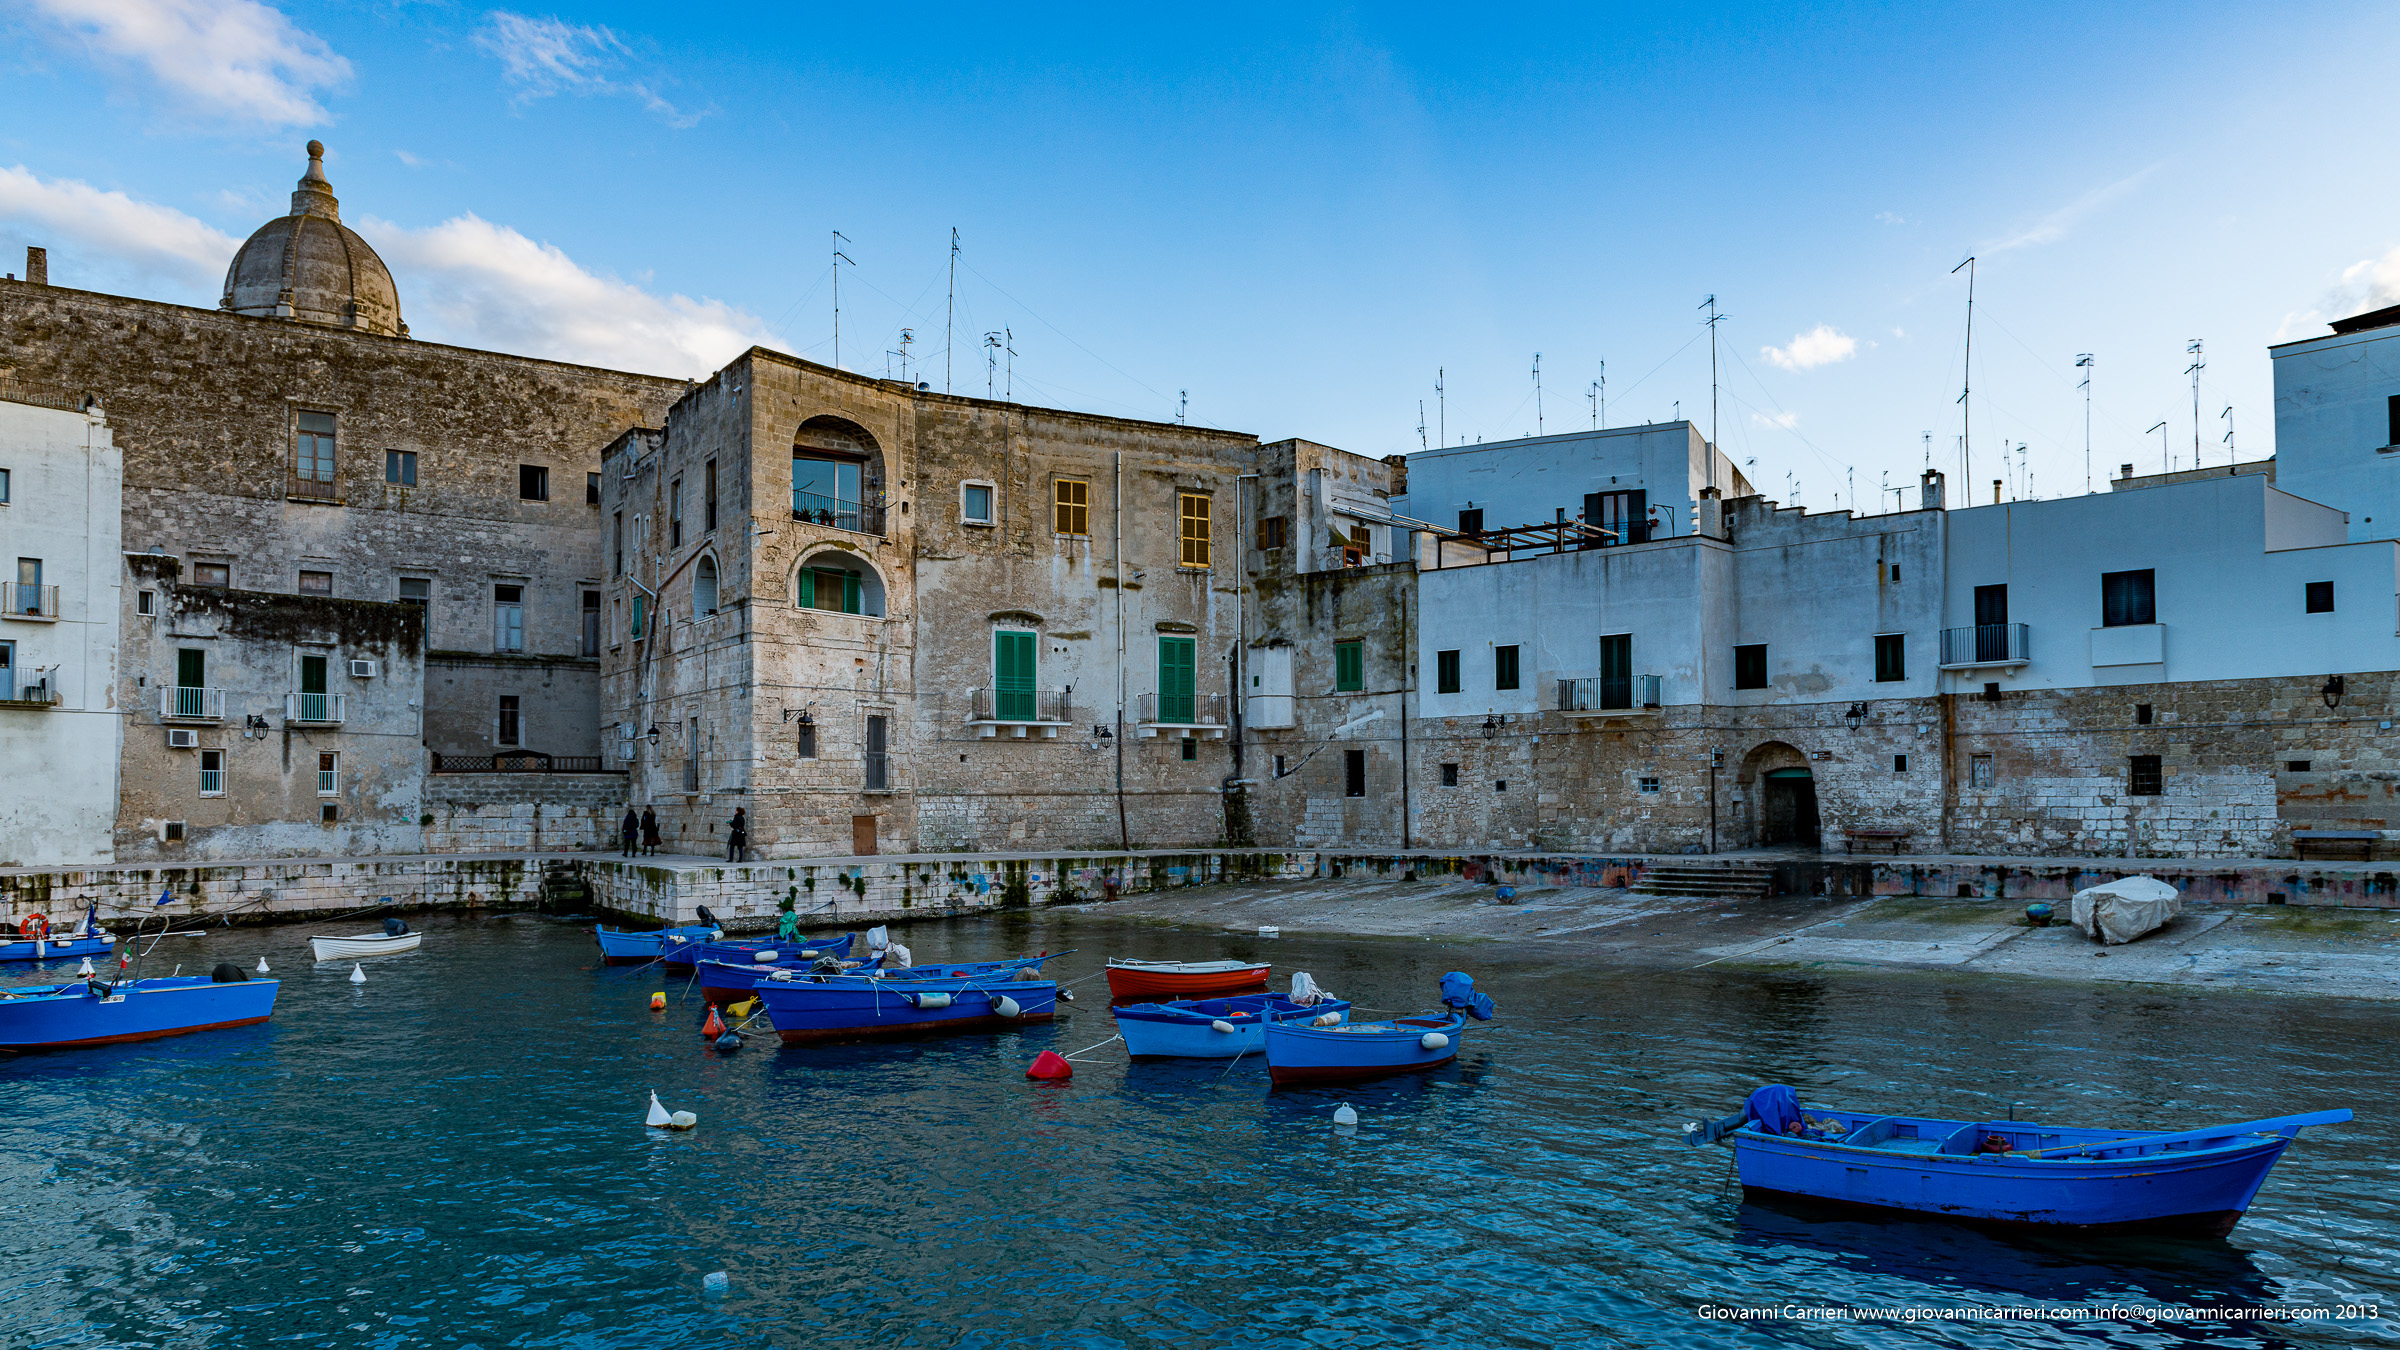 A view at the harbor of Monopoli